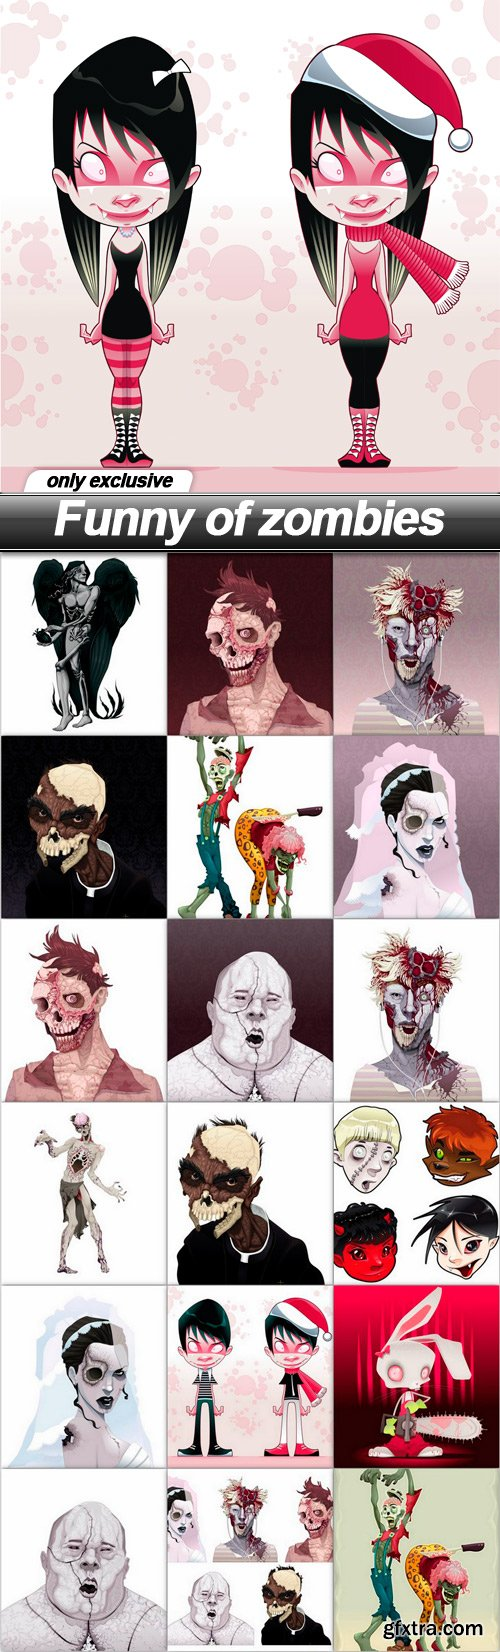 Funny of zombies - 19 EPS